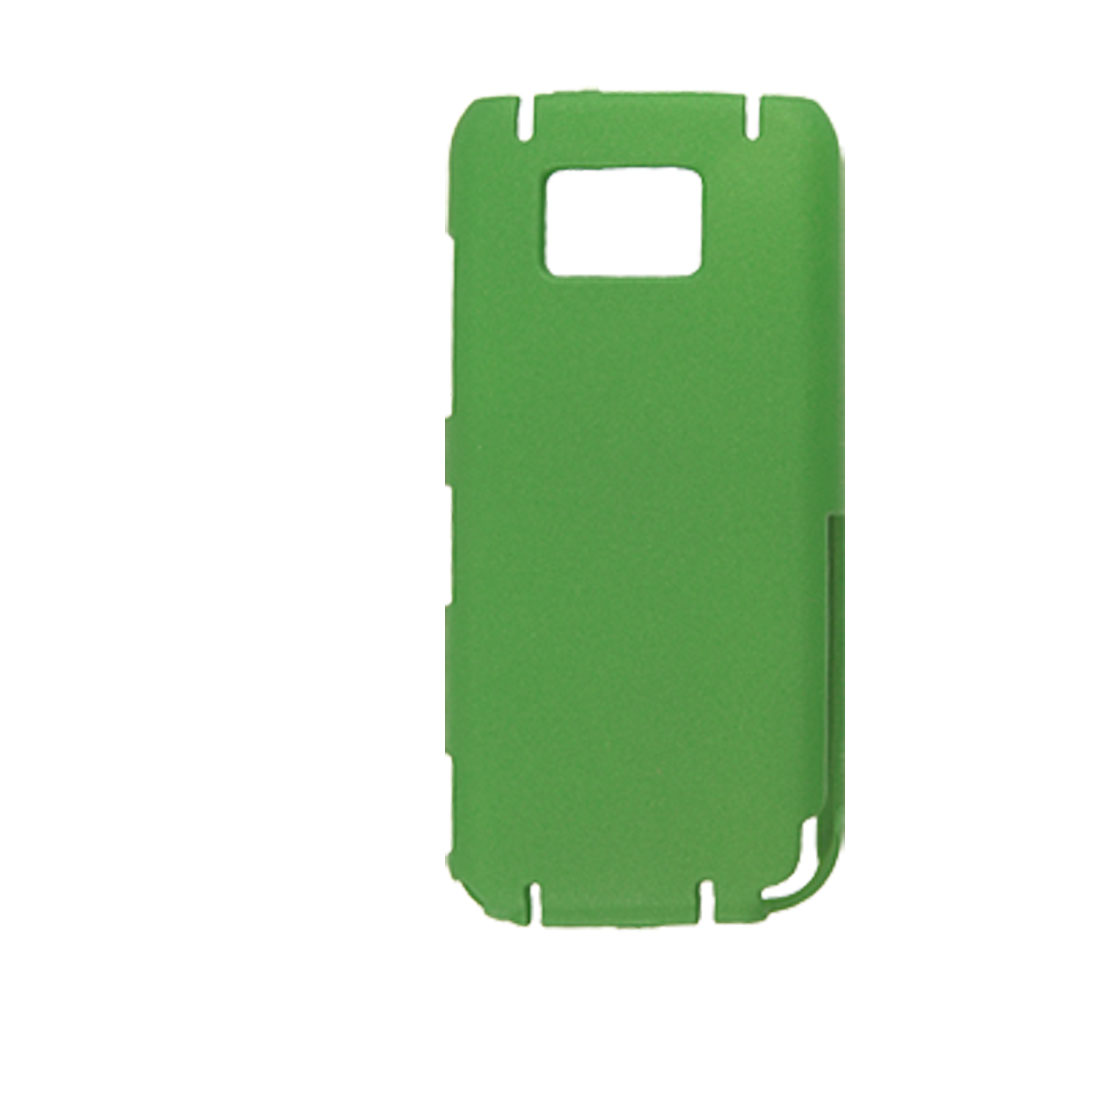 Green Rubberized Hard Plastic Back Case Protector for Nokia 5530